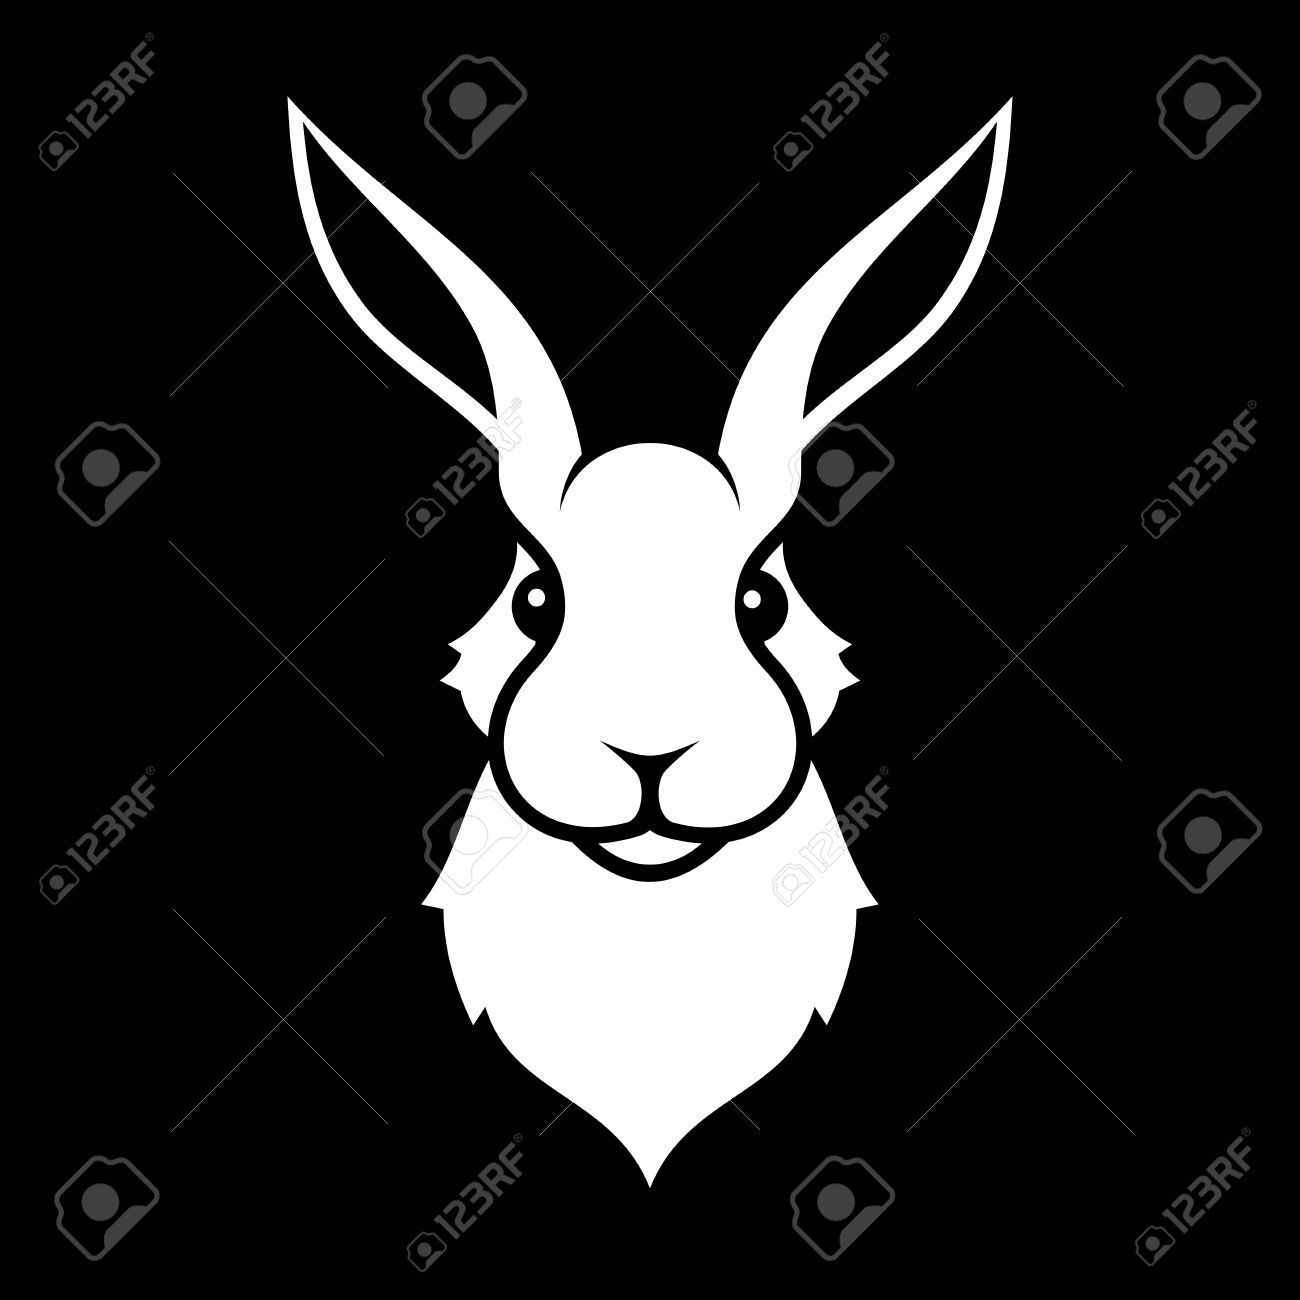 medium resolution of image result for free rabbit clipart black and white